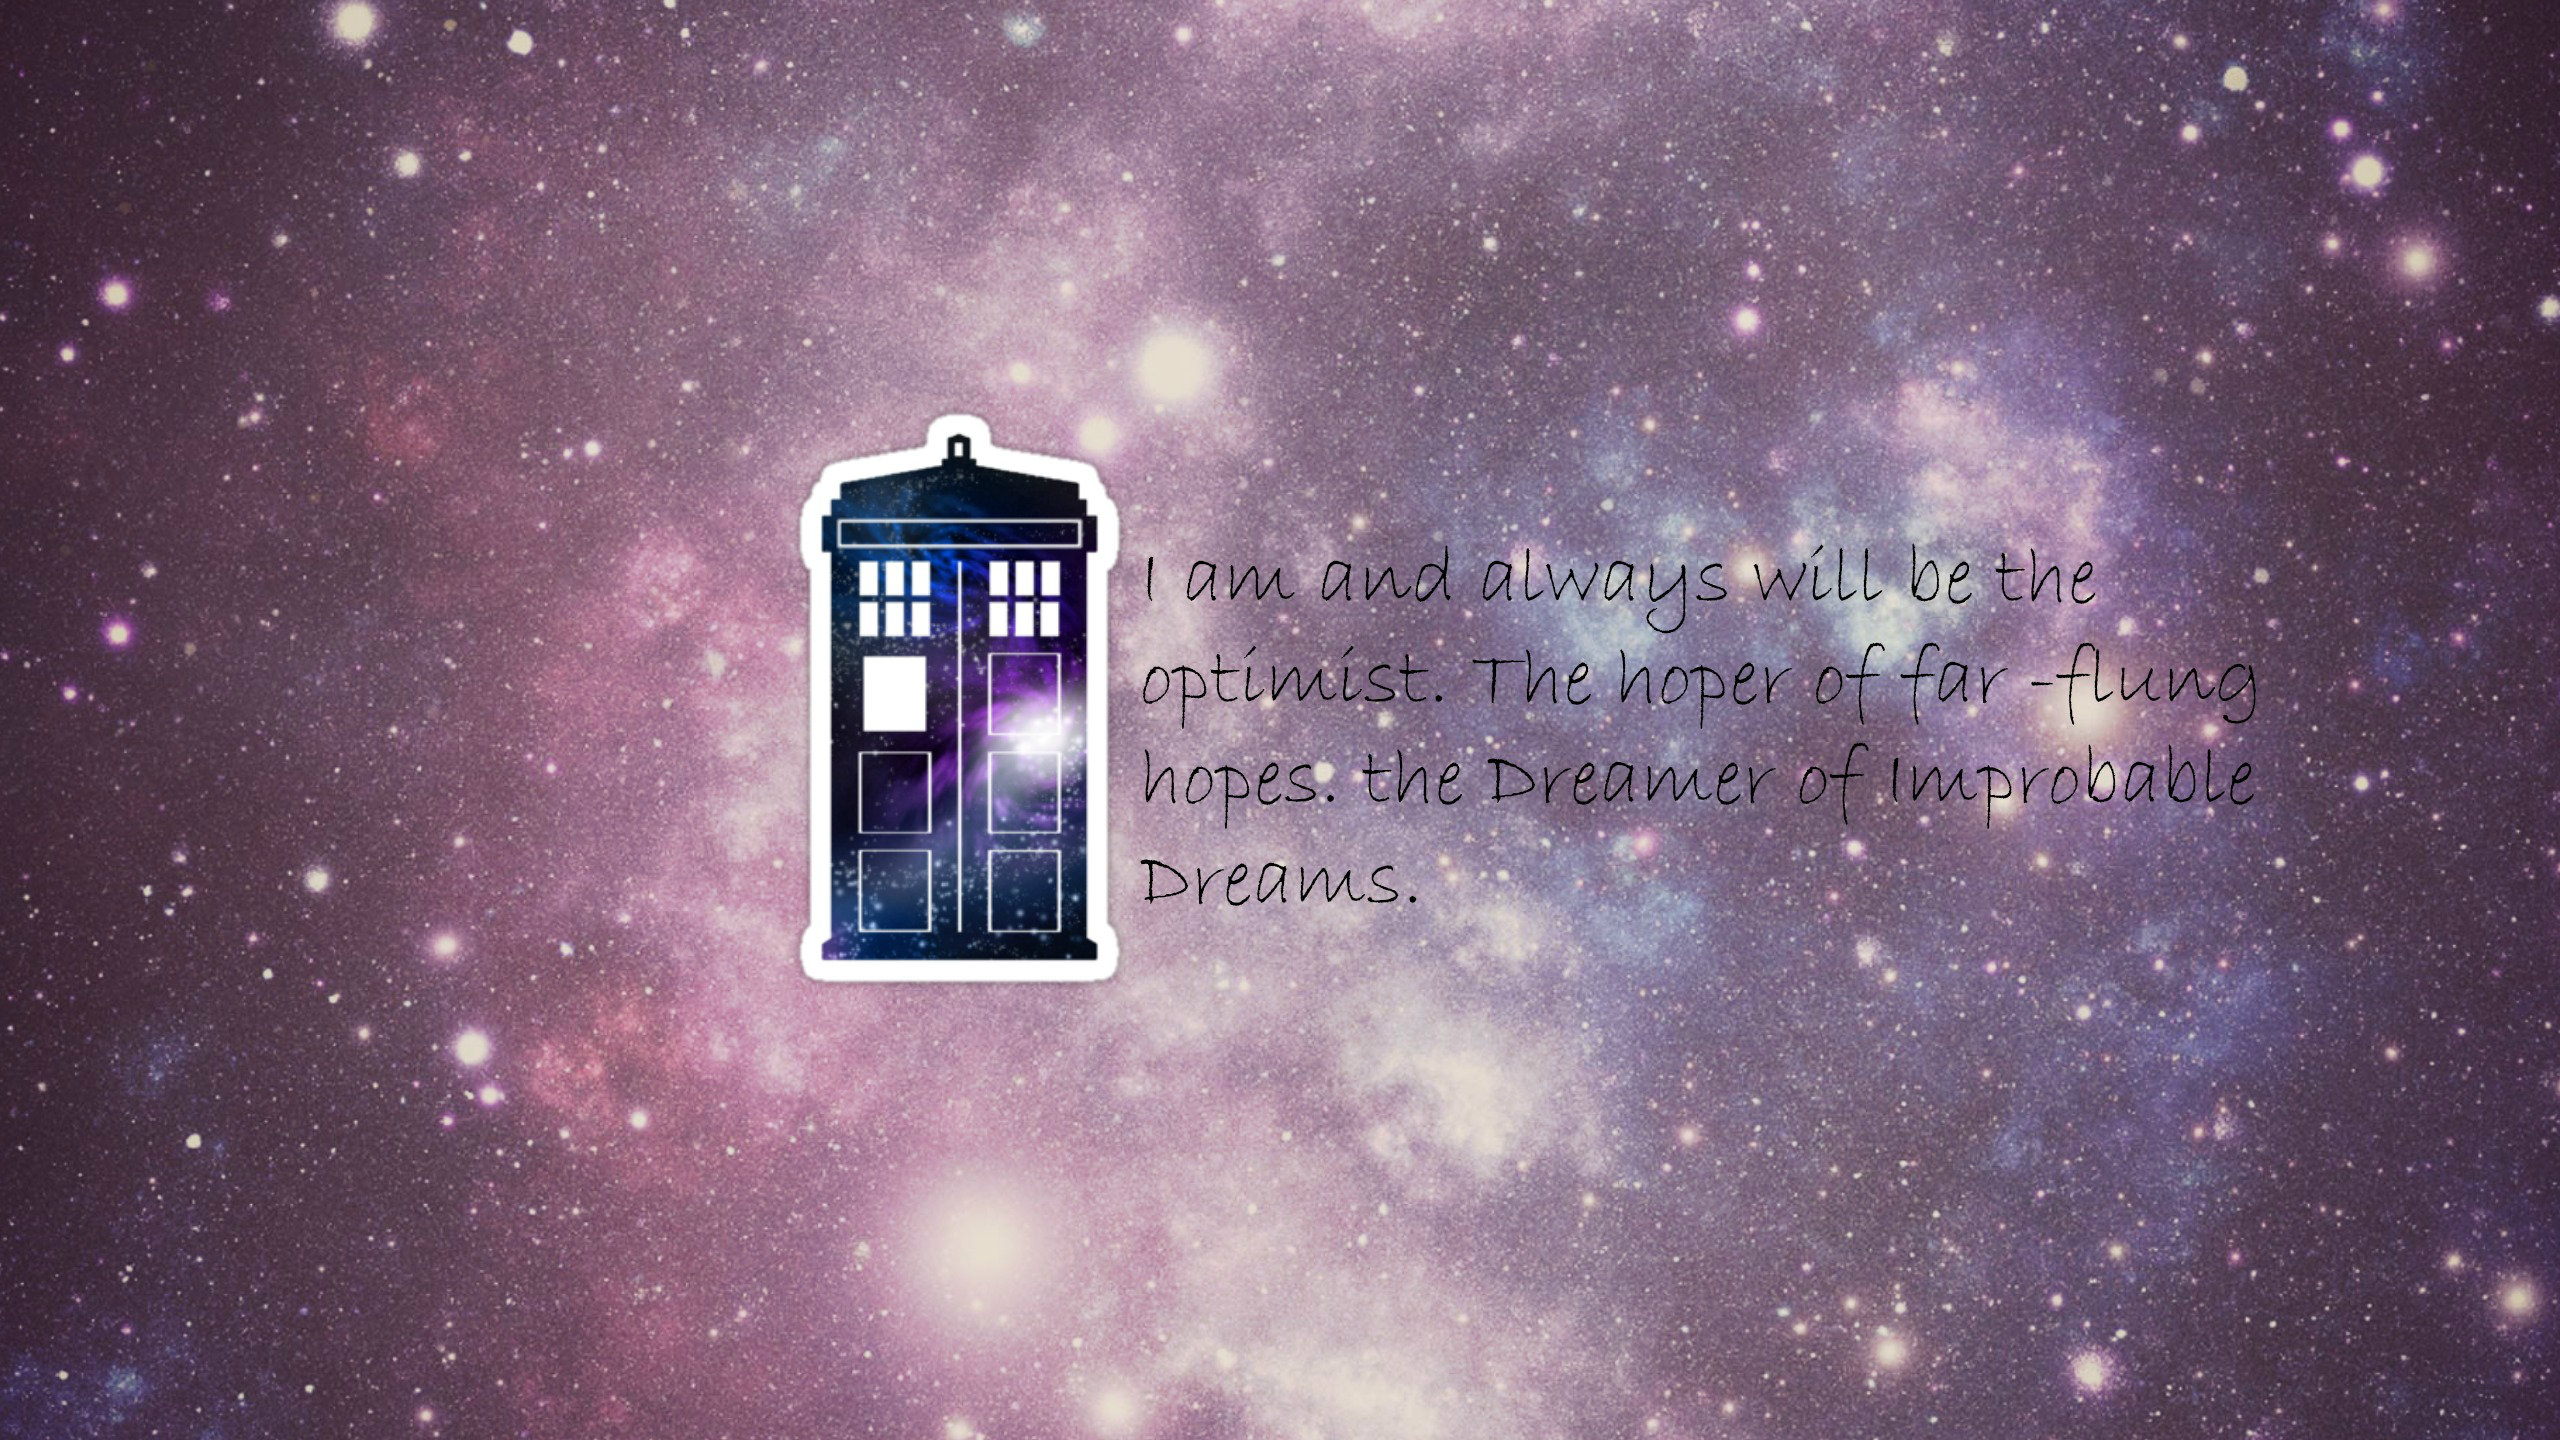 tardis images hd wallpaper - photo #42